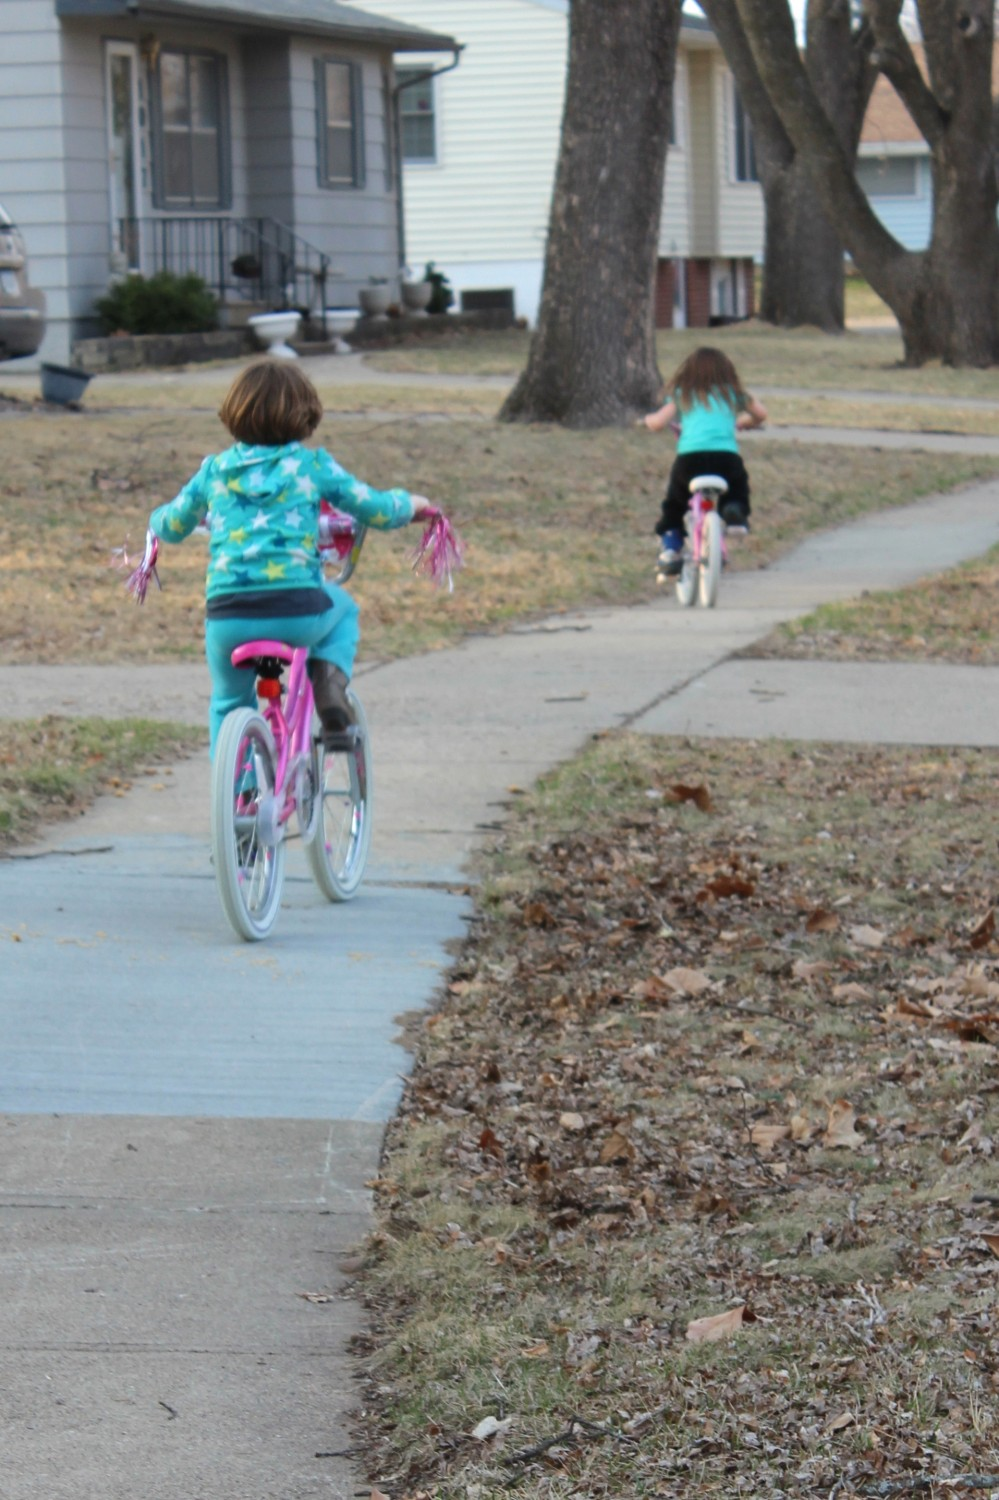 My little girls riding their bikes in the neighborhood last year: June was 6 and Rory was 4.